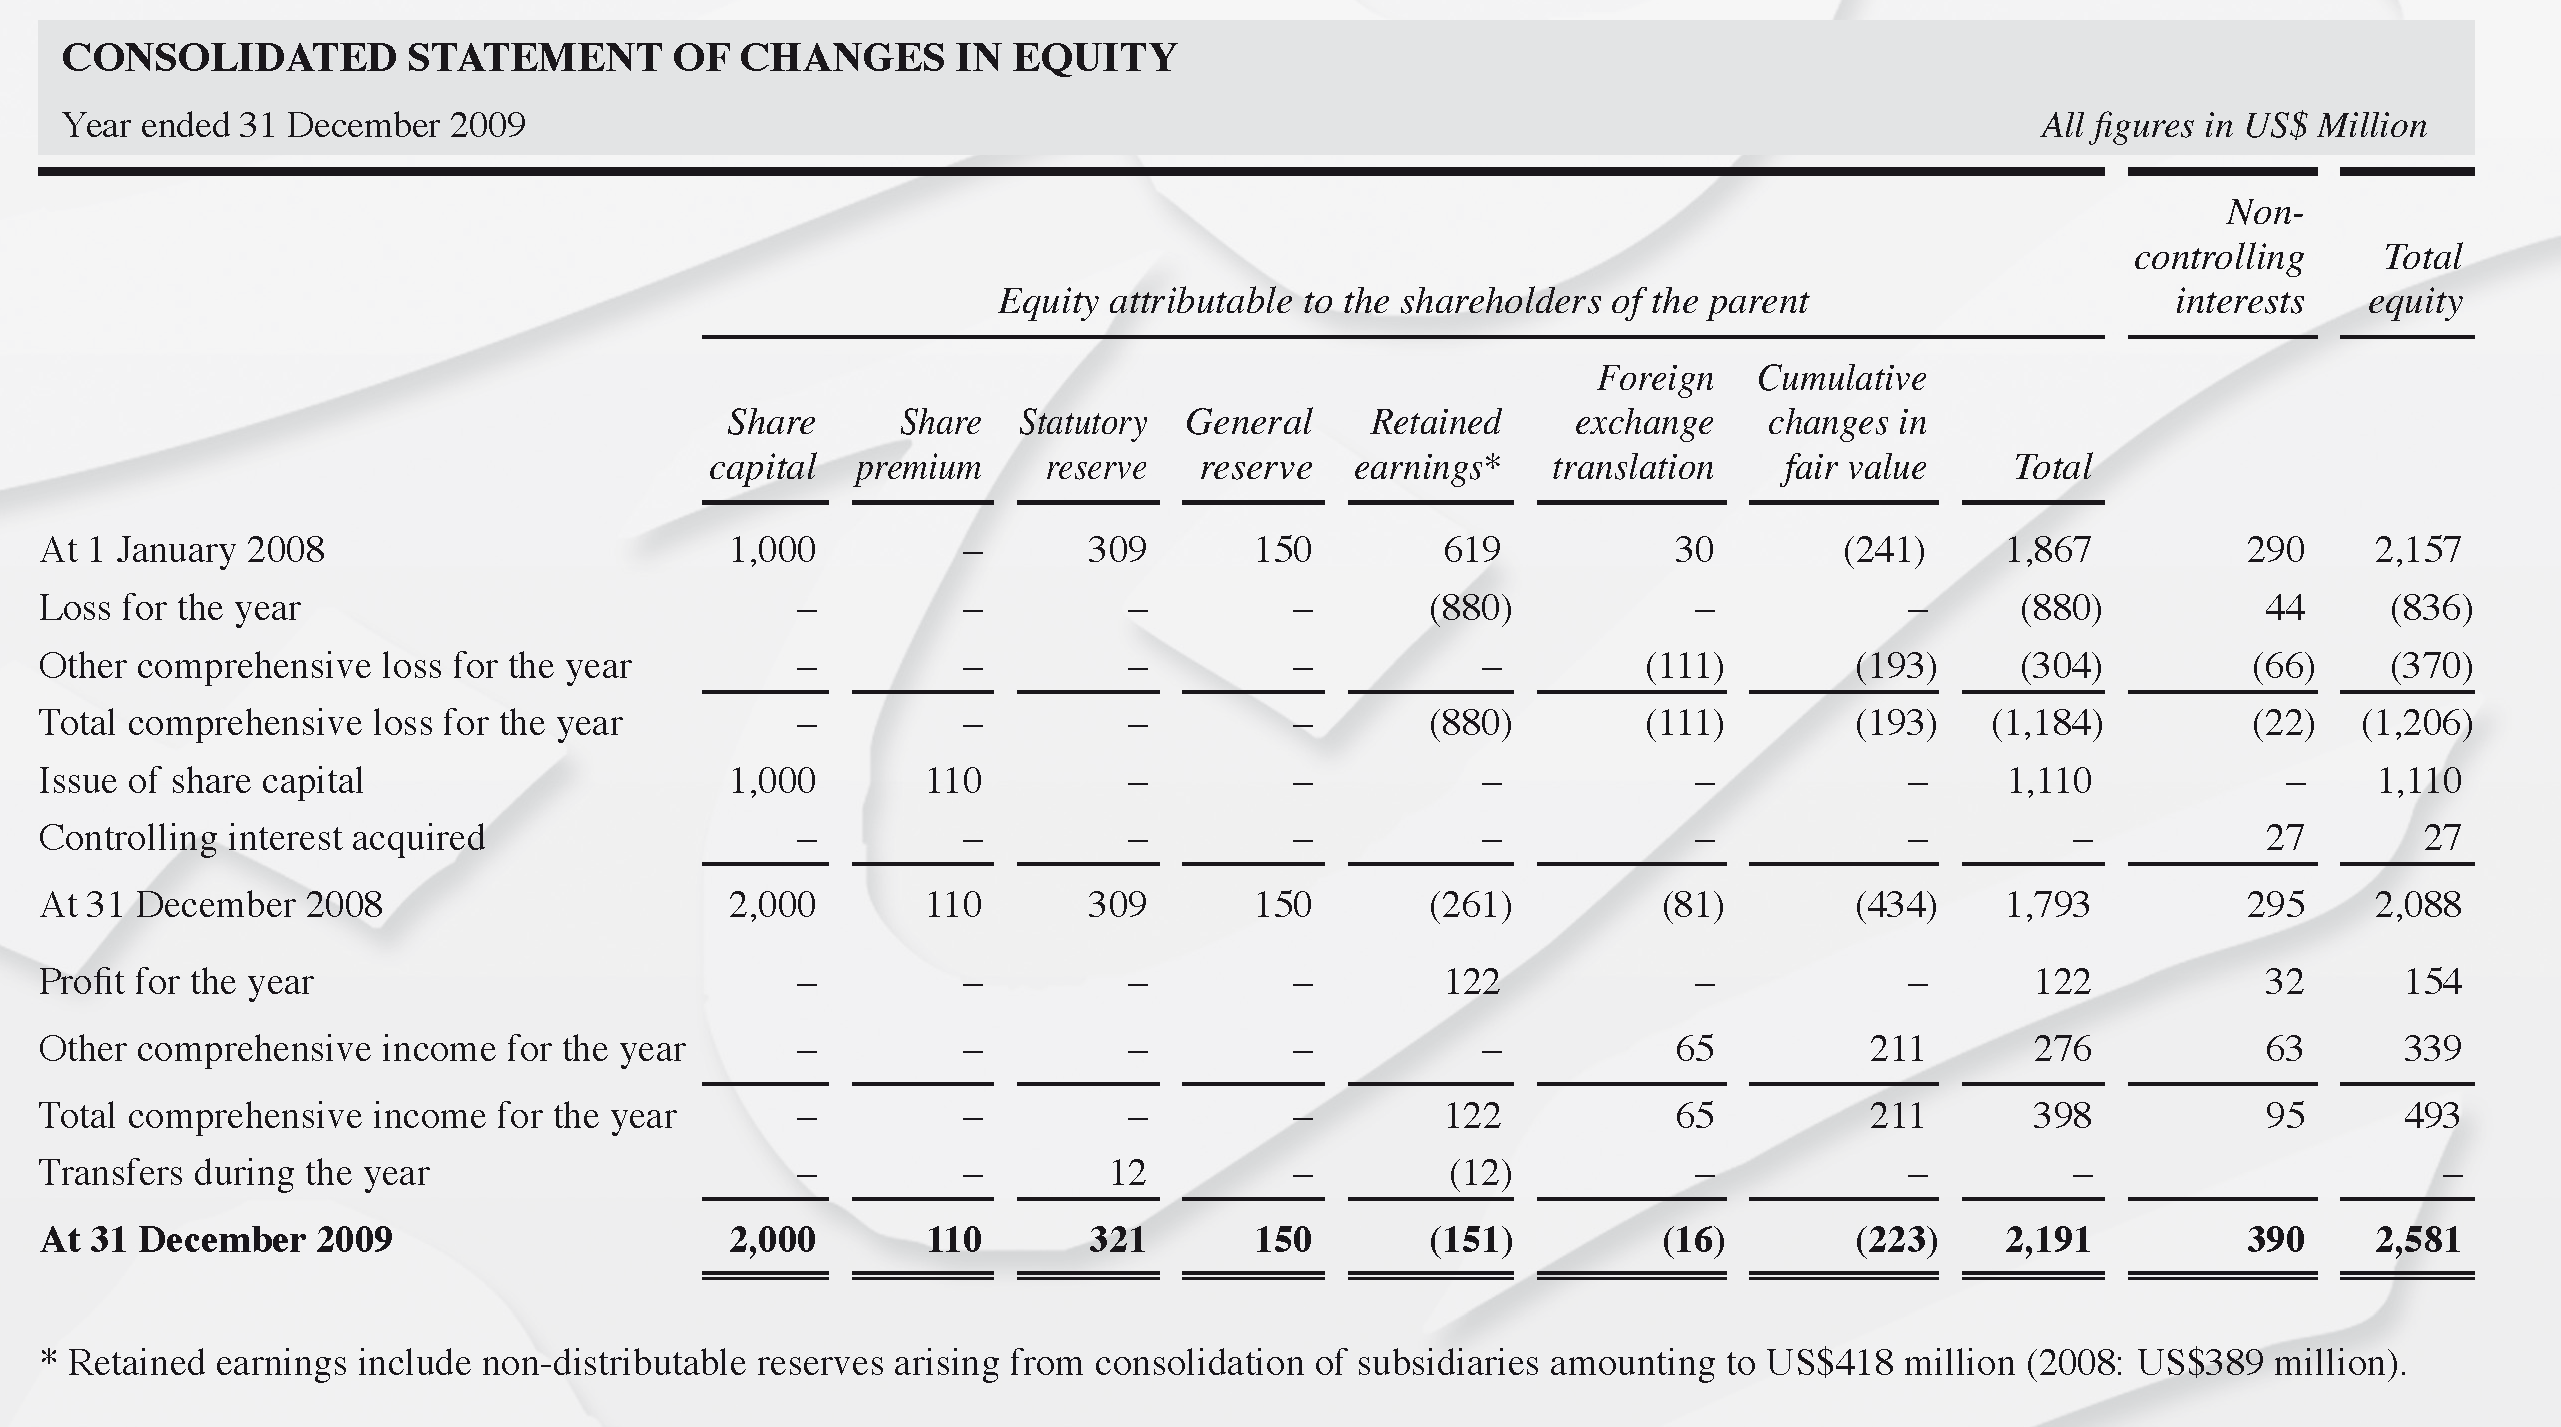 Consolidated Statement of Changes in Equity - image